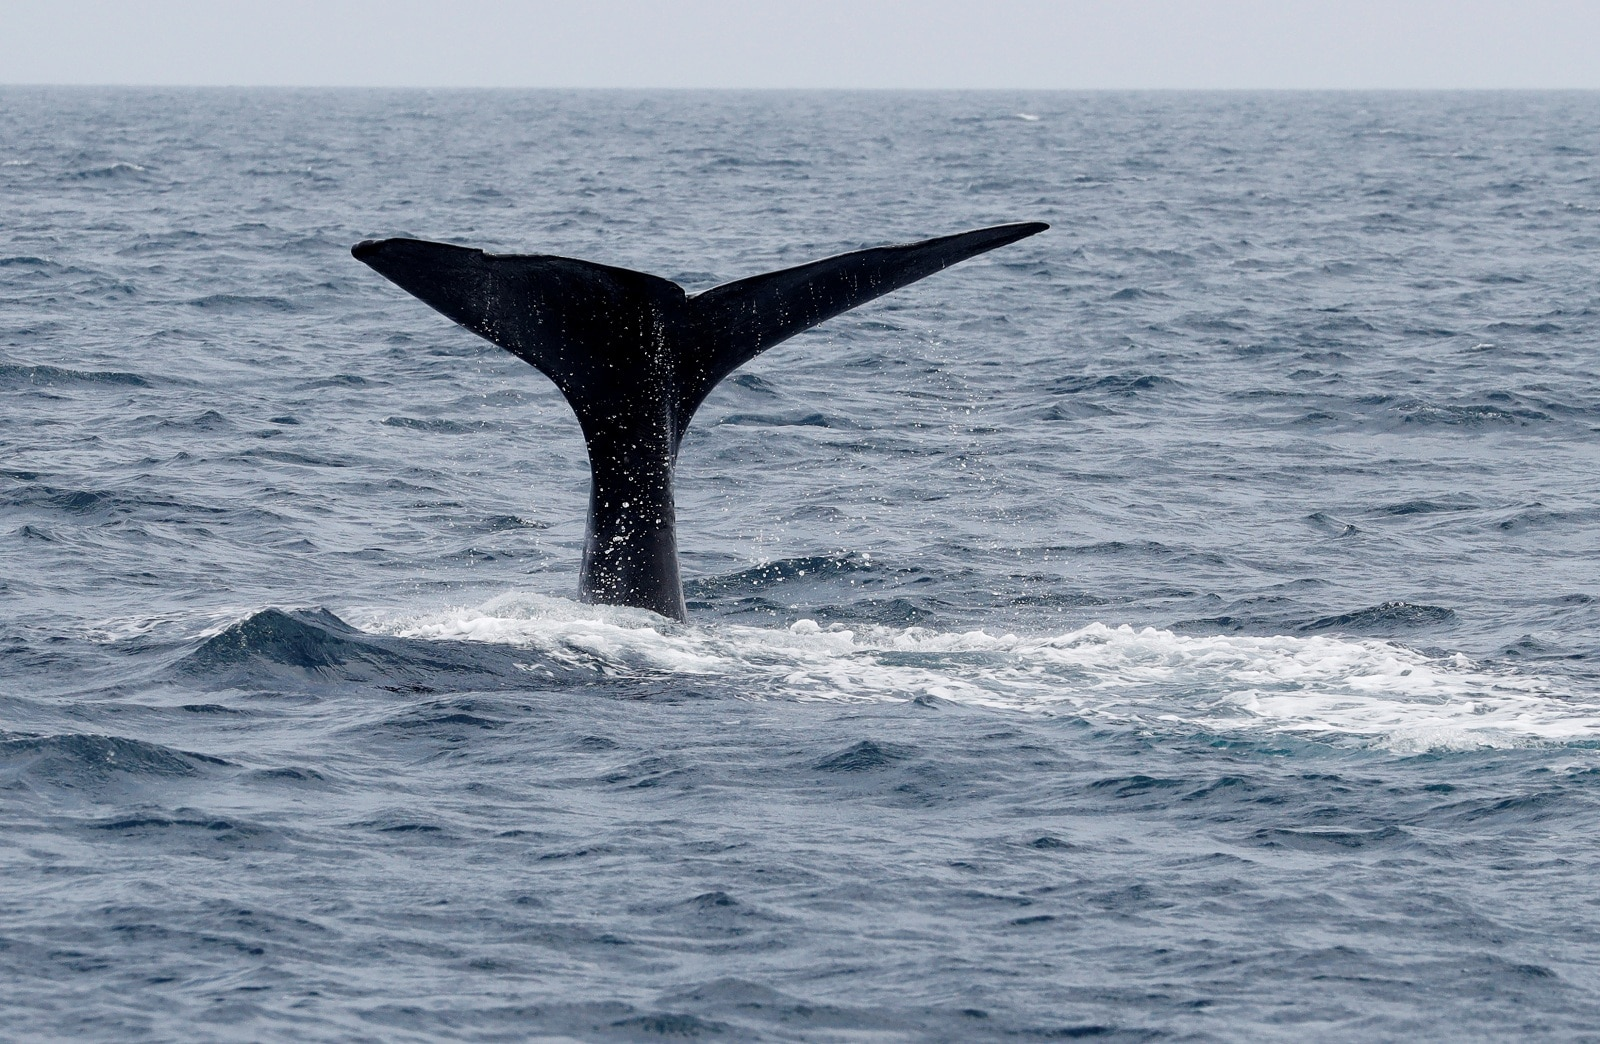 The fluke of a sperm whale sticks out of the sea as it dives in the sea near Rausu, Hokkaido, Japan, July 1, 2019. REUTERS/Kim Kyung-Hoon